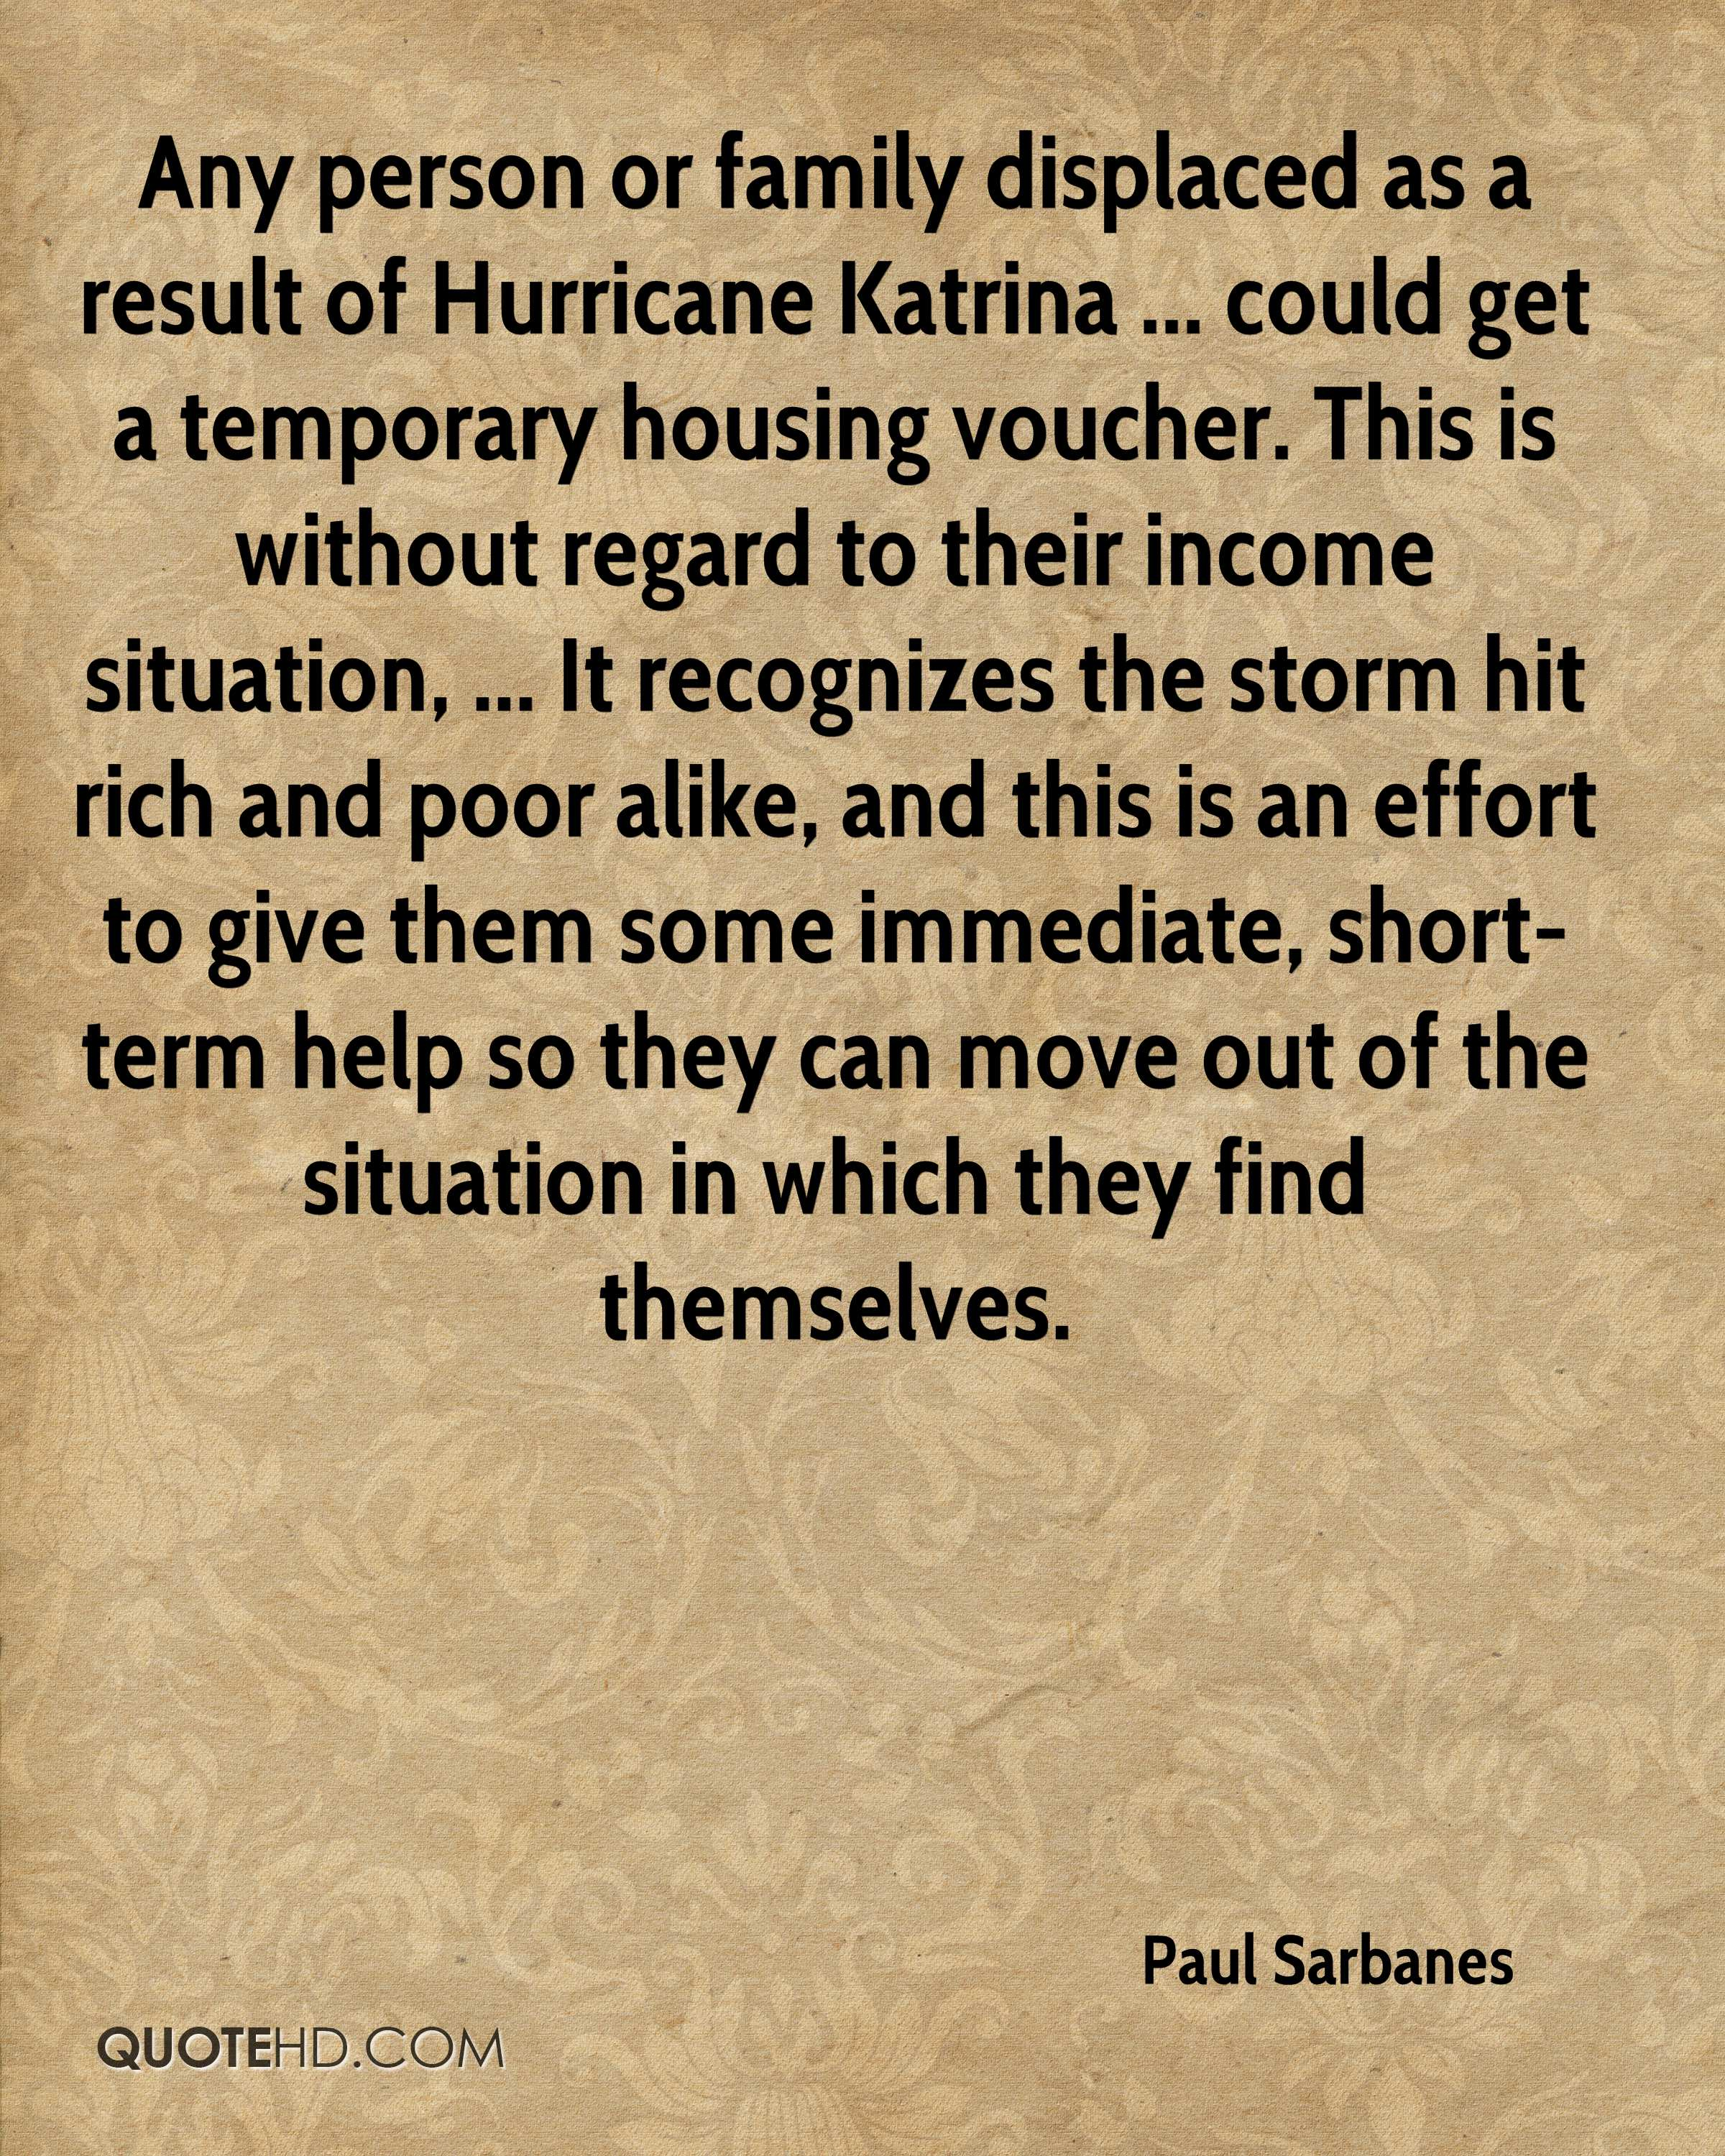 Any person or family displaced as a result of Hurricane Katrina ... could get a temporary housing voucher. This is without regard to their income situation, ... It recognizes the storm hit rich and poor alike, and this is an effort to give them some immediate, short-term help so they can move out of the situation in which they find themselves.